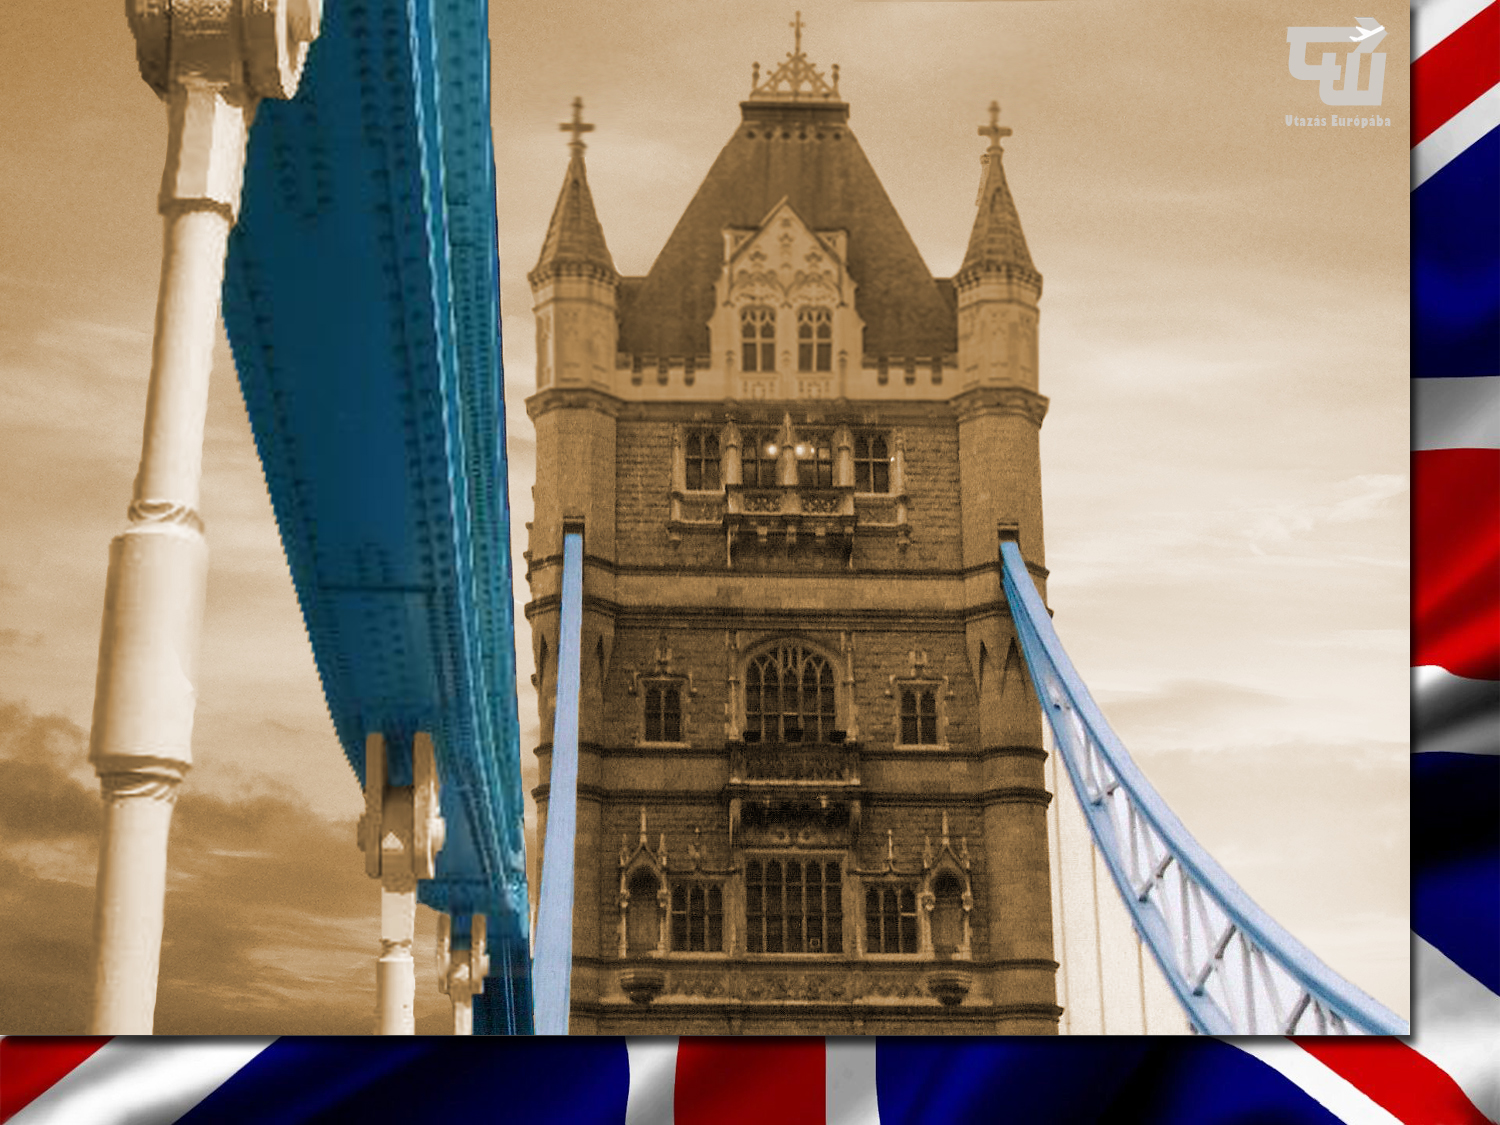 01_tower_bridge_temze_thames_london_nagy-britannia_anglia_great_britain_england_utazas_europaba.jpg